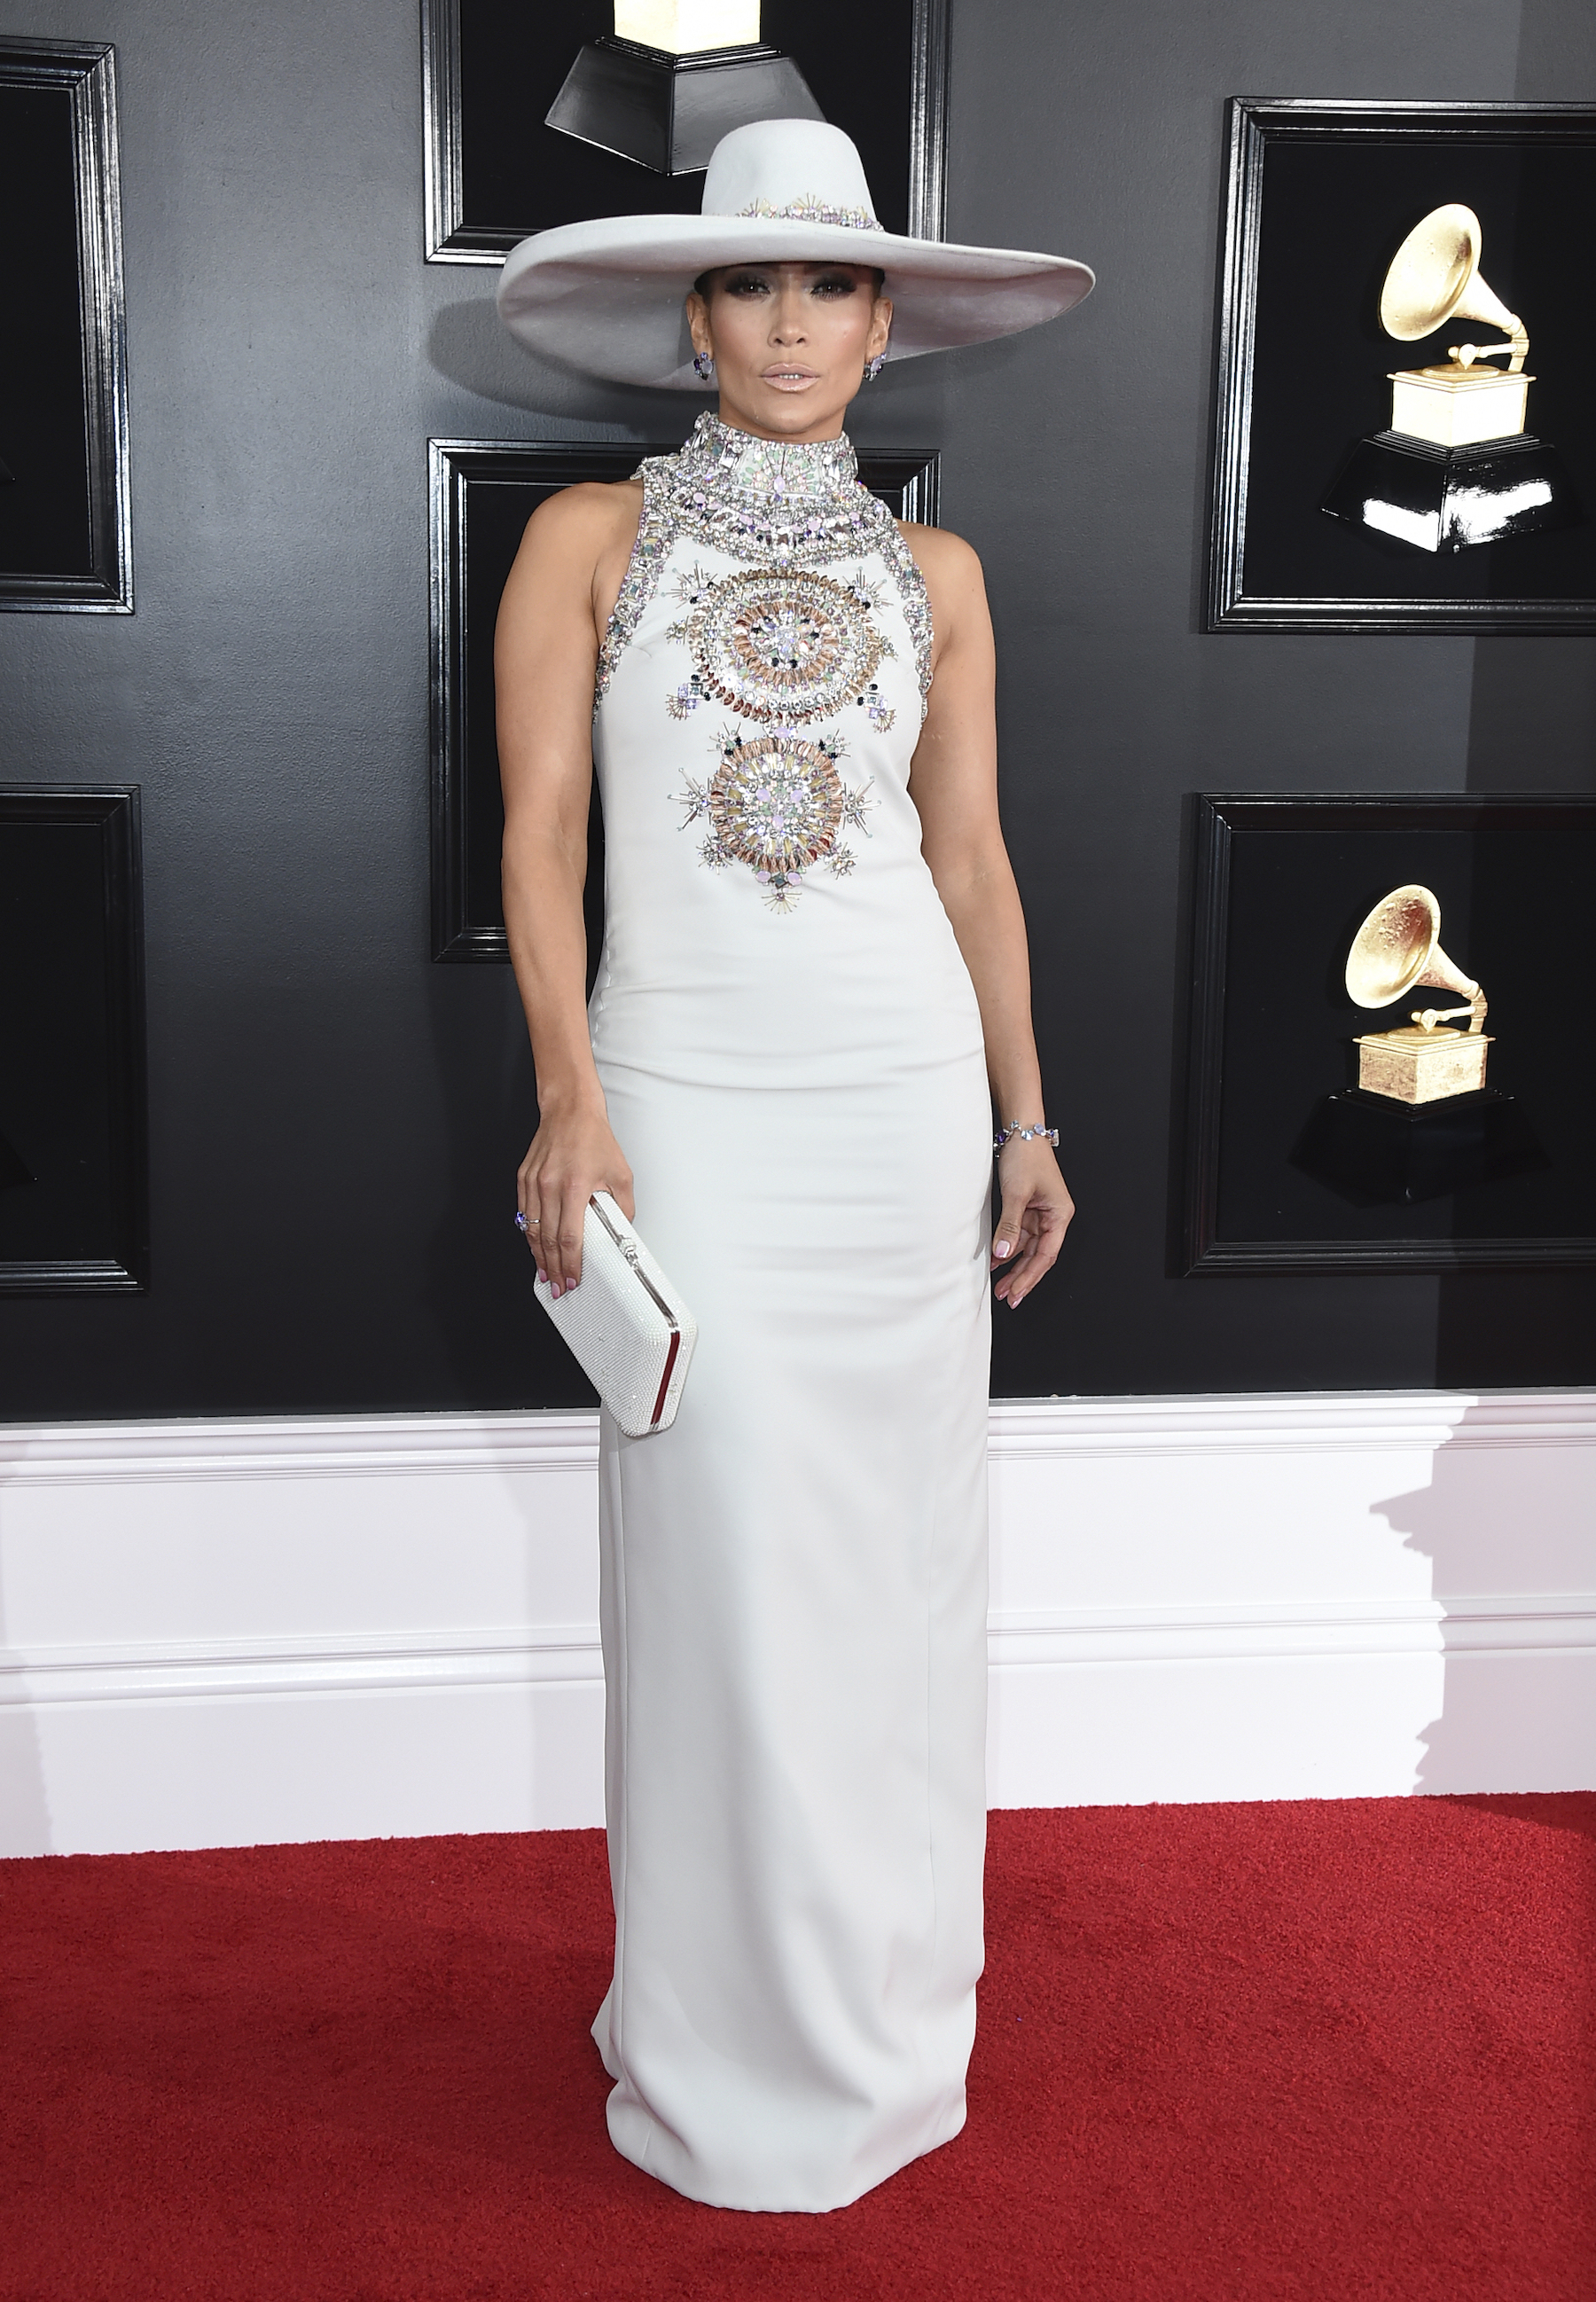 <div class='meta'><div class='origin-logo' data-origin='AP'></div><span class='caption-text' data-credit='Jordan Strauss/Invision/AP'>Jennifer Lopez arrives at the 61st annual Grammy Awards at the Staples Center on Sunday, Feb. 10, 2019, in Los Angeles.</span></div>